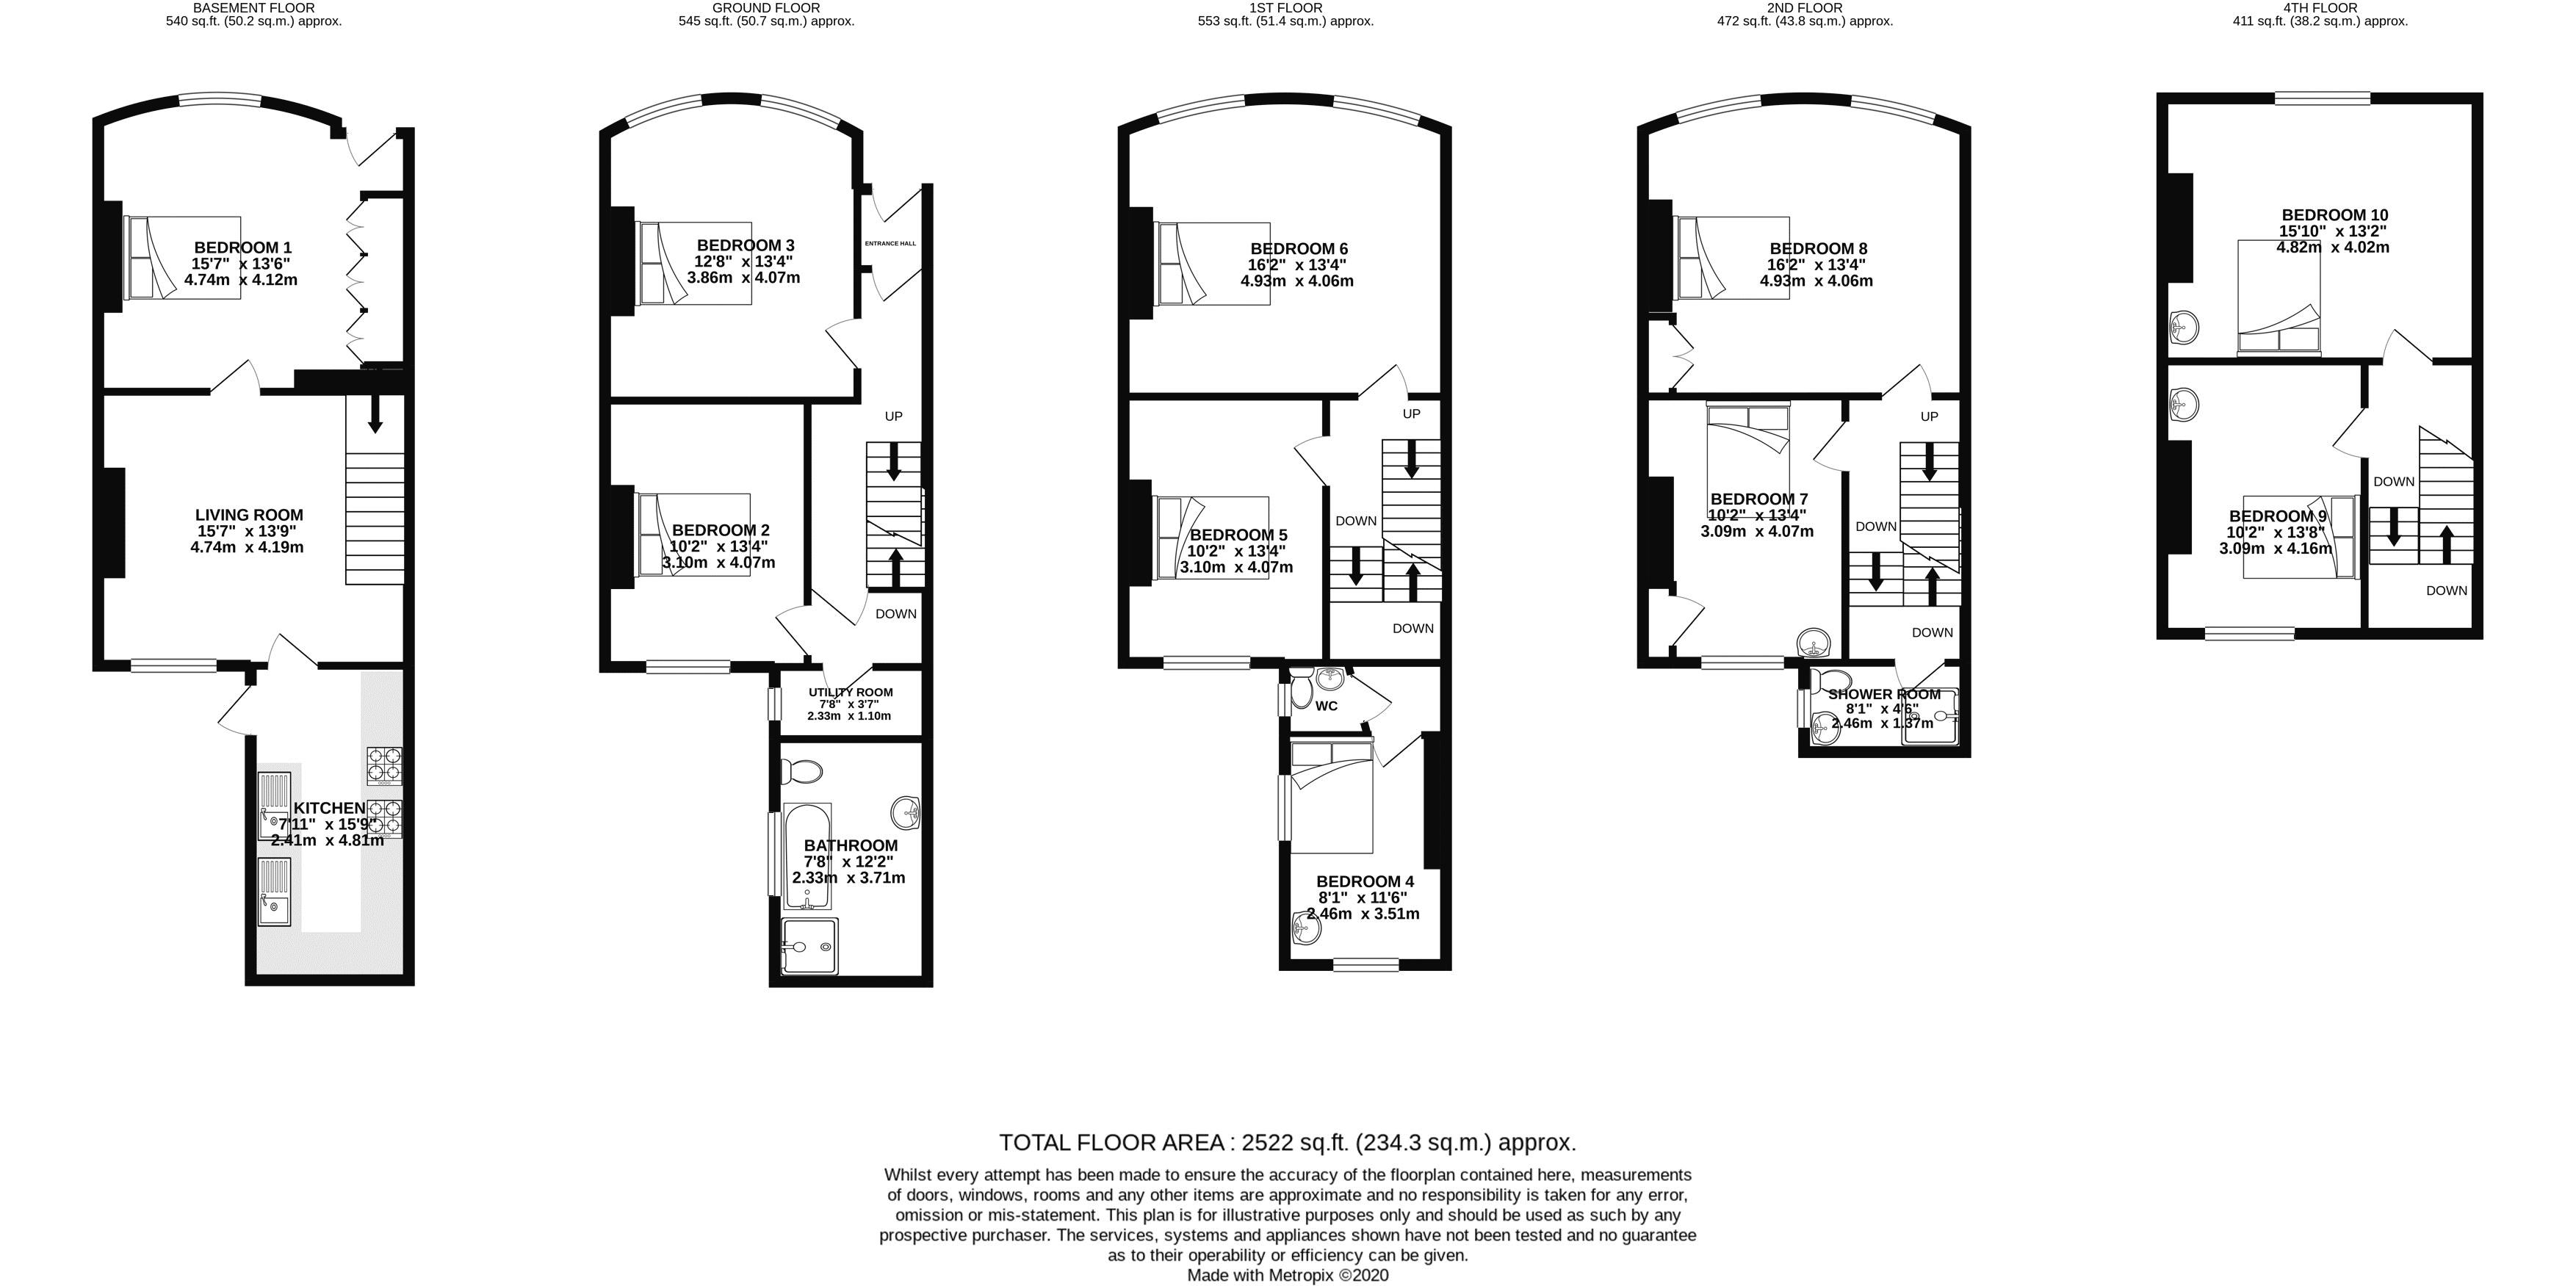 Floor plans for St. Georges Terrace, Brighton property for sale in Kemptown, Brighton by Coapt